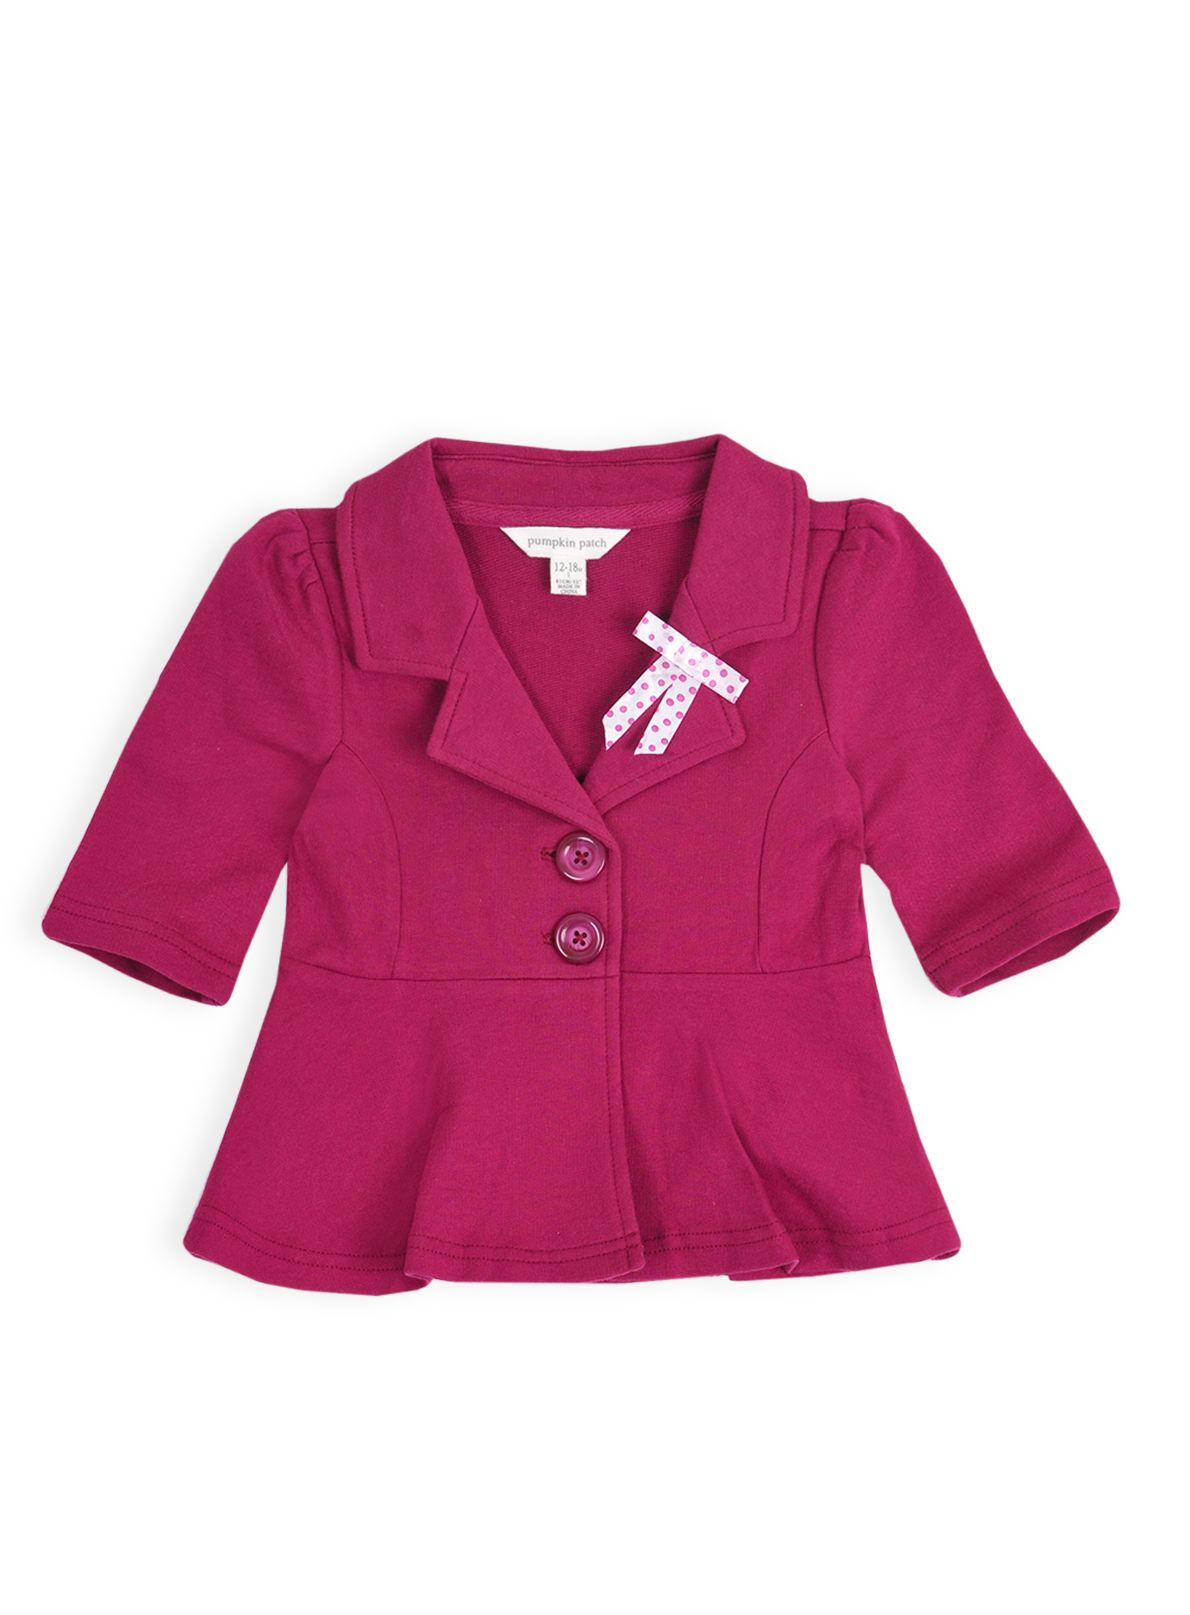 Girls peplum knit blazer